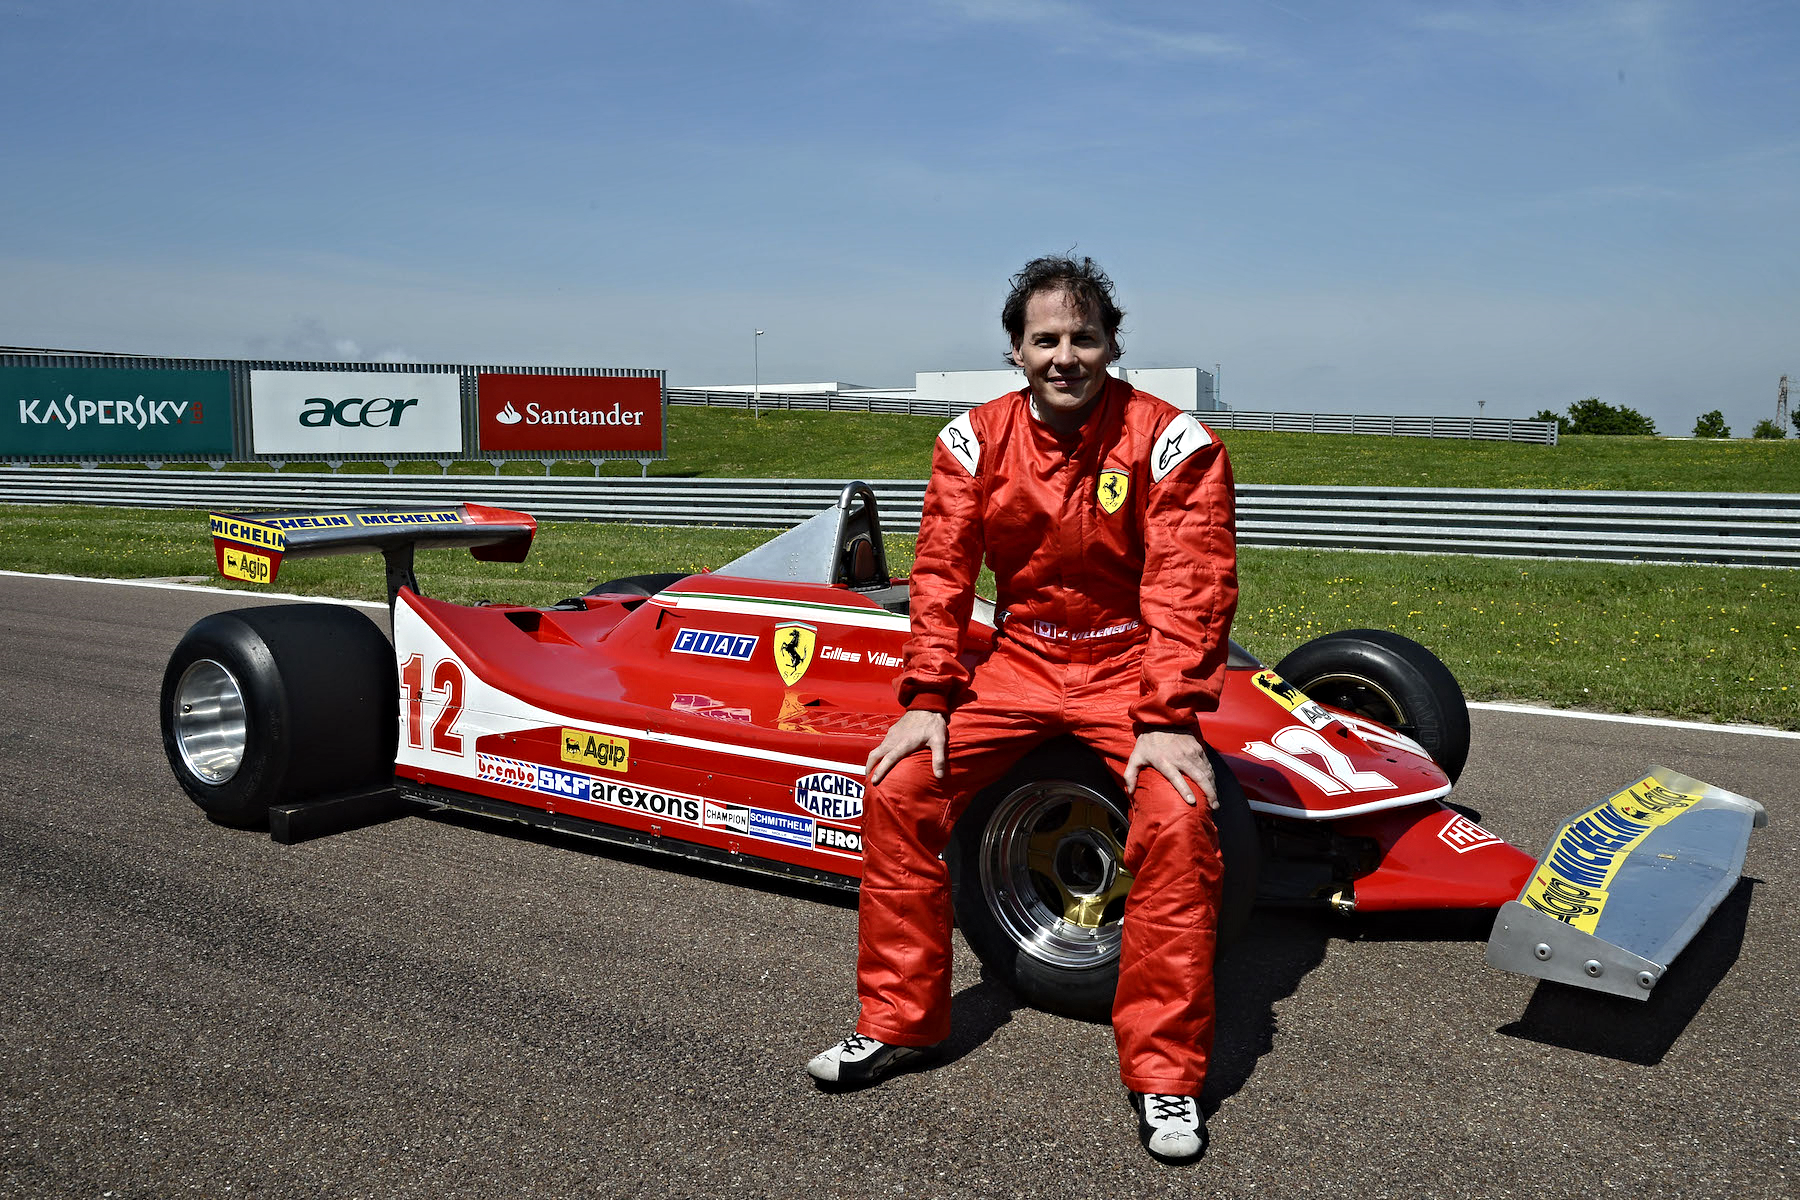 Jacques Villeneuve seating in Gilles's Ferrari 312T4